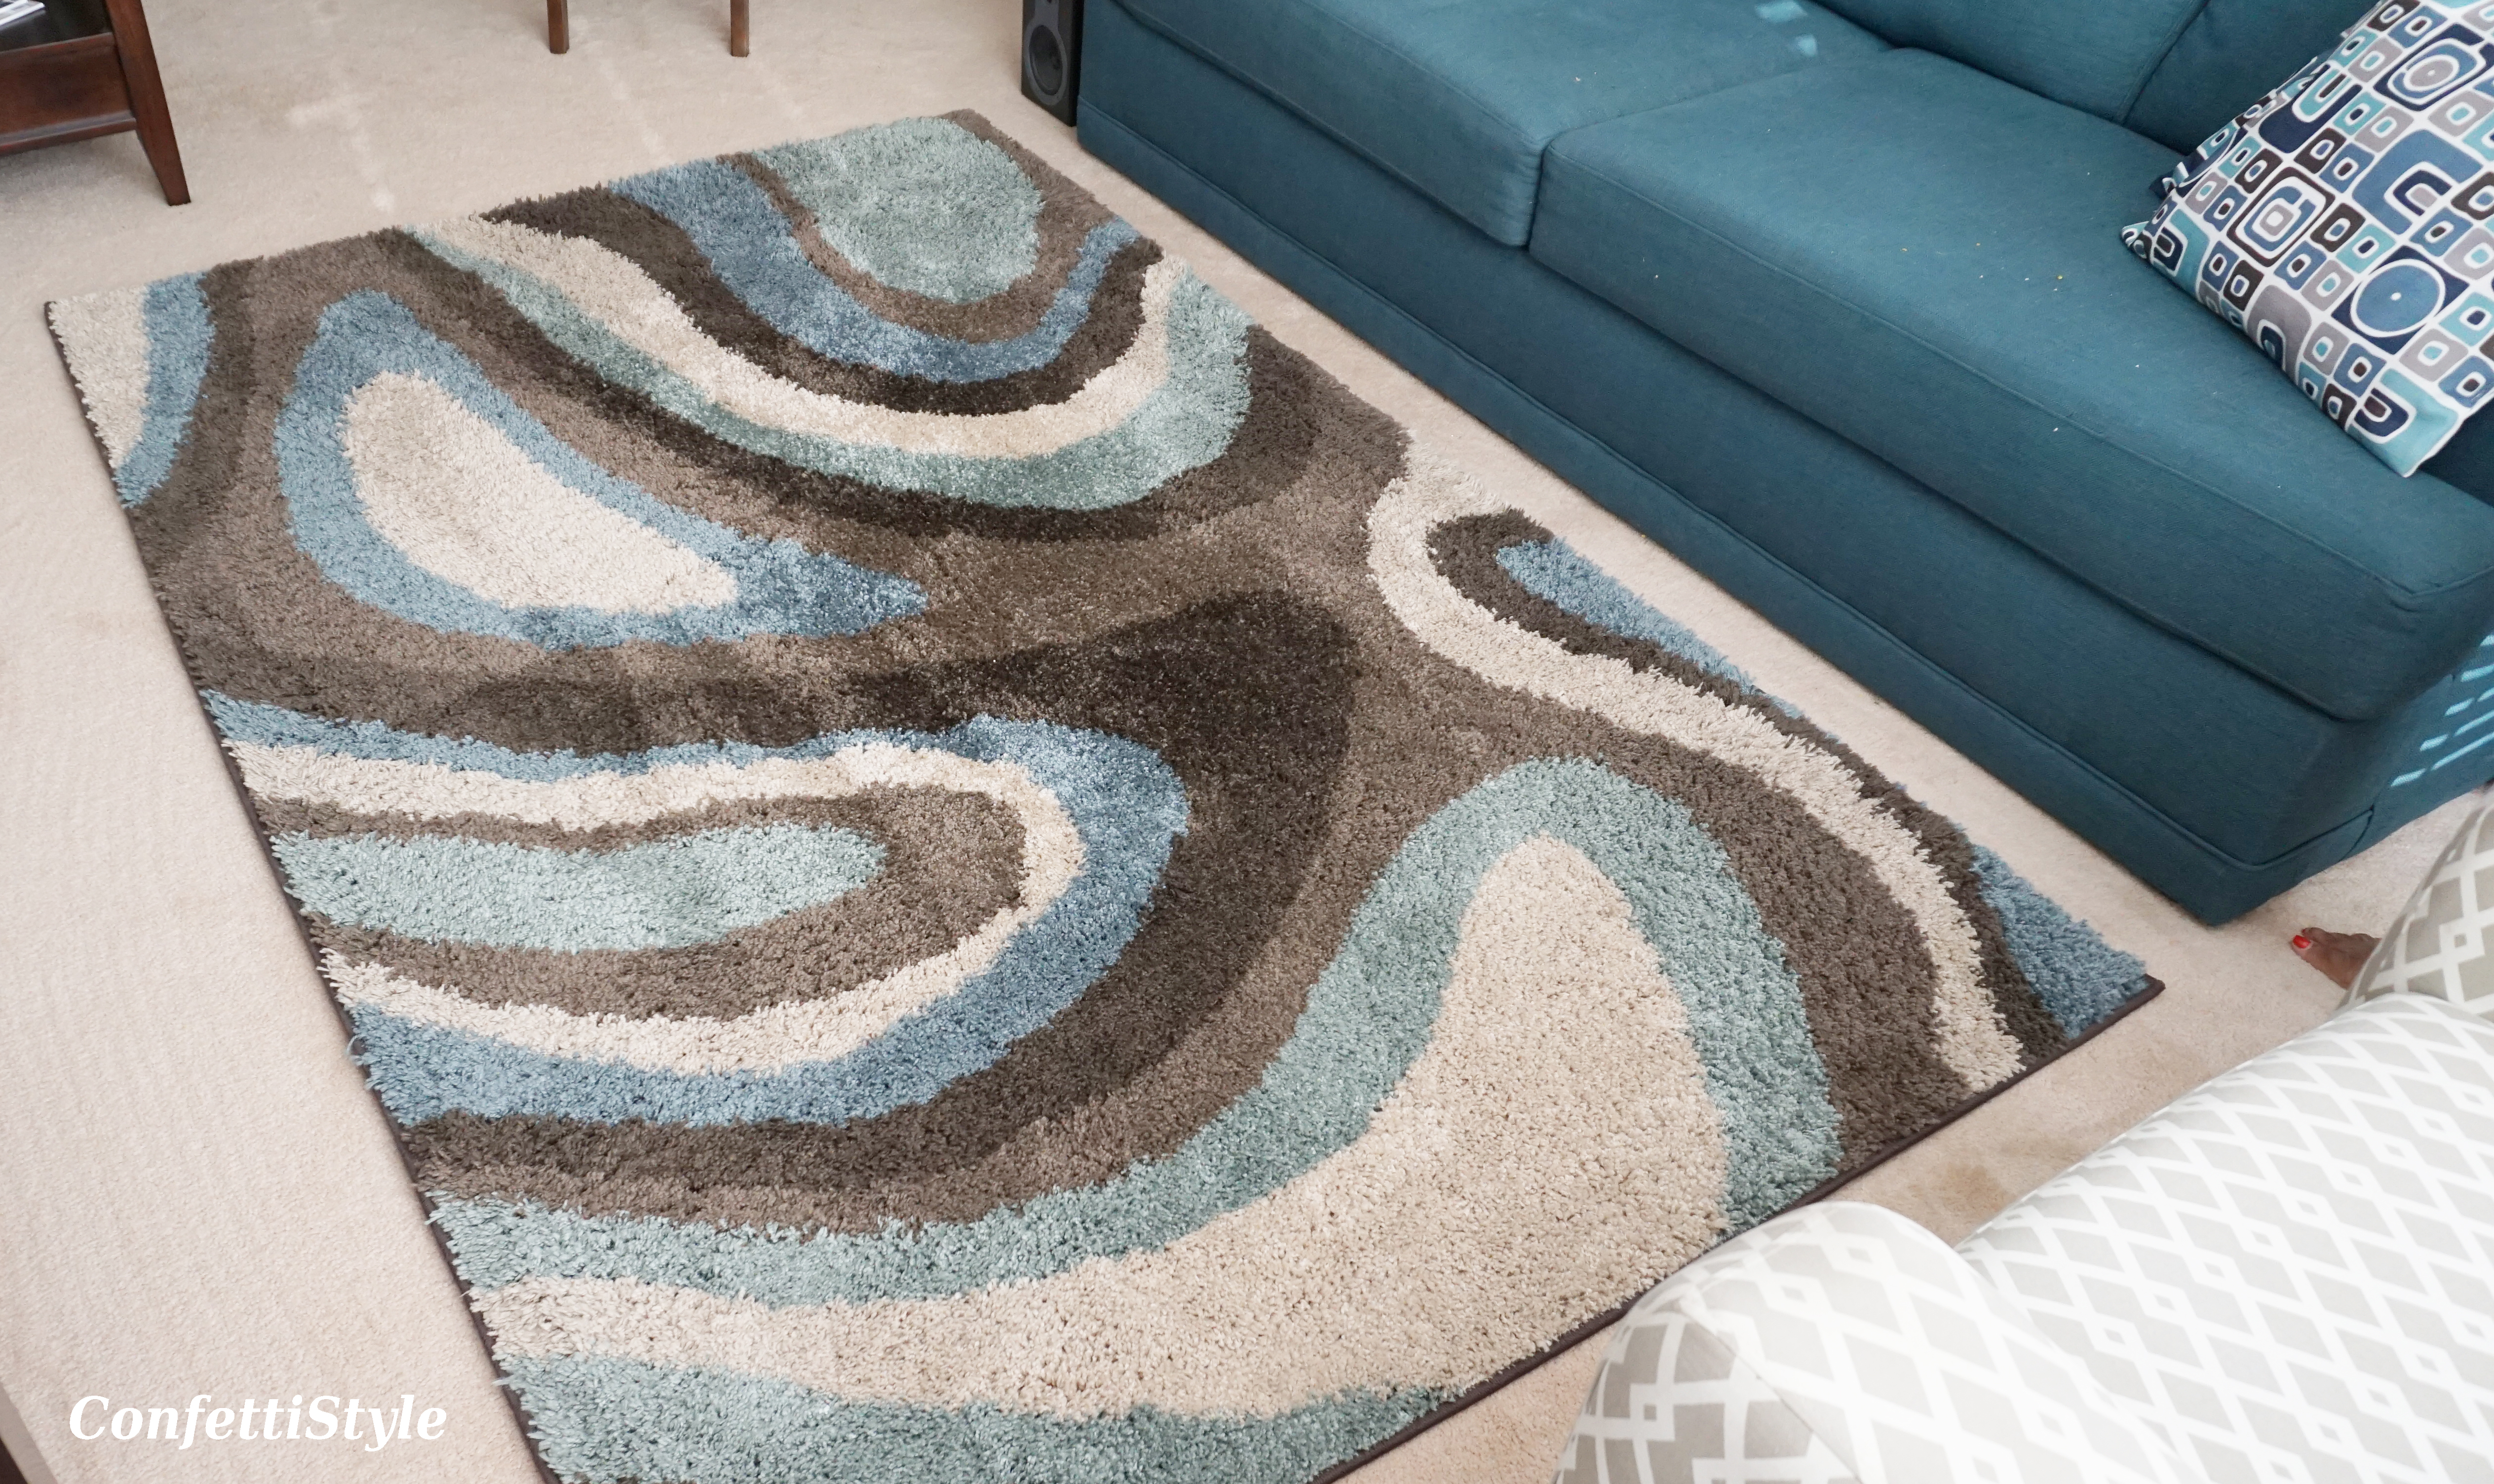 gripper decor regard rug with pads ikea of space and pad image installing threestems over to hard home surface cookwithalocal for floors